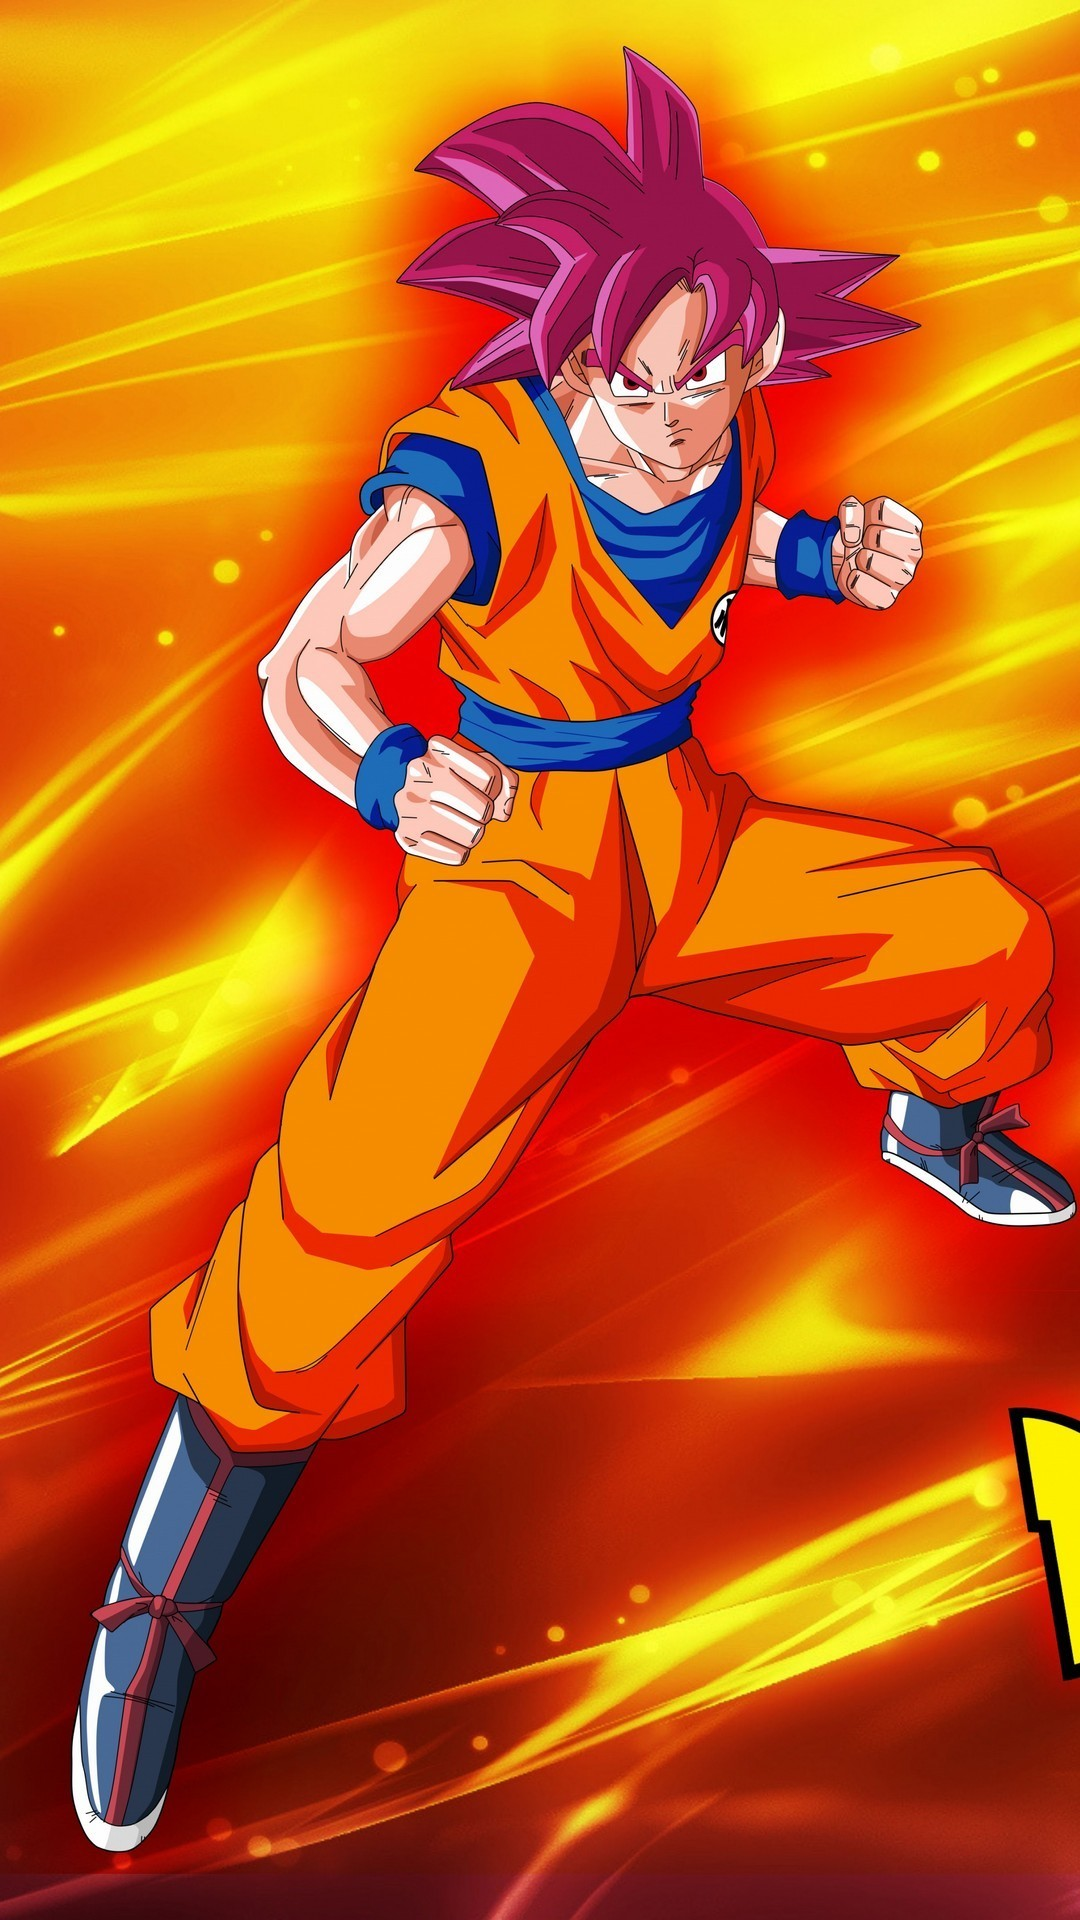 Goku Super Saiyan God Wallpaper Android